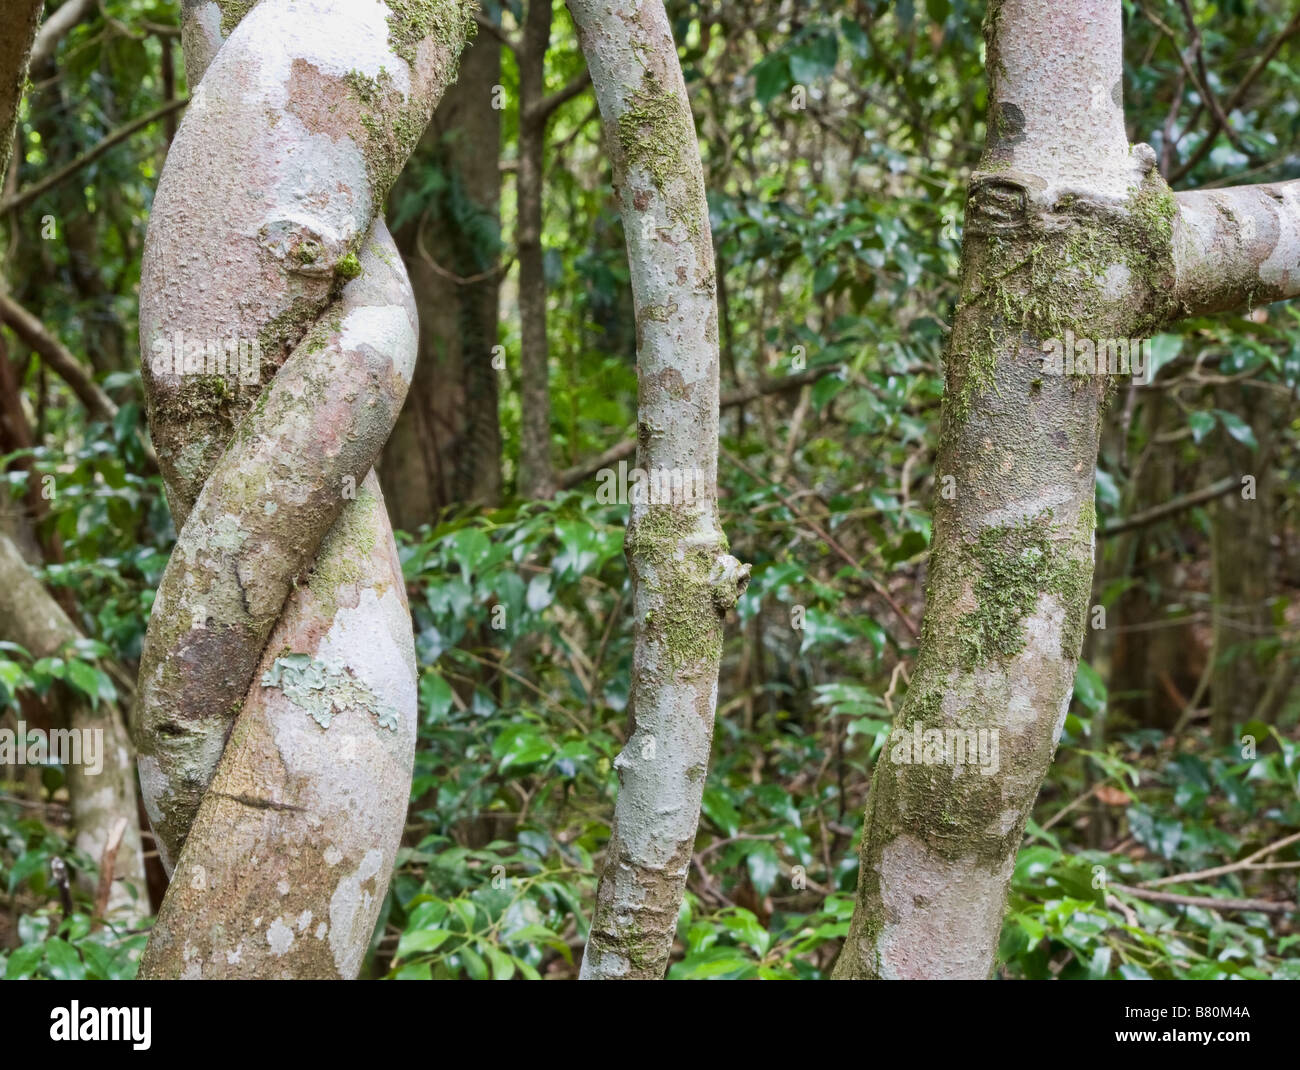 the twists and turns of trees in the rainforest - Stock Image